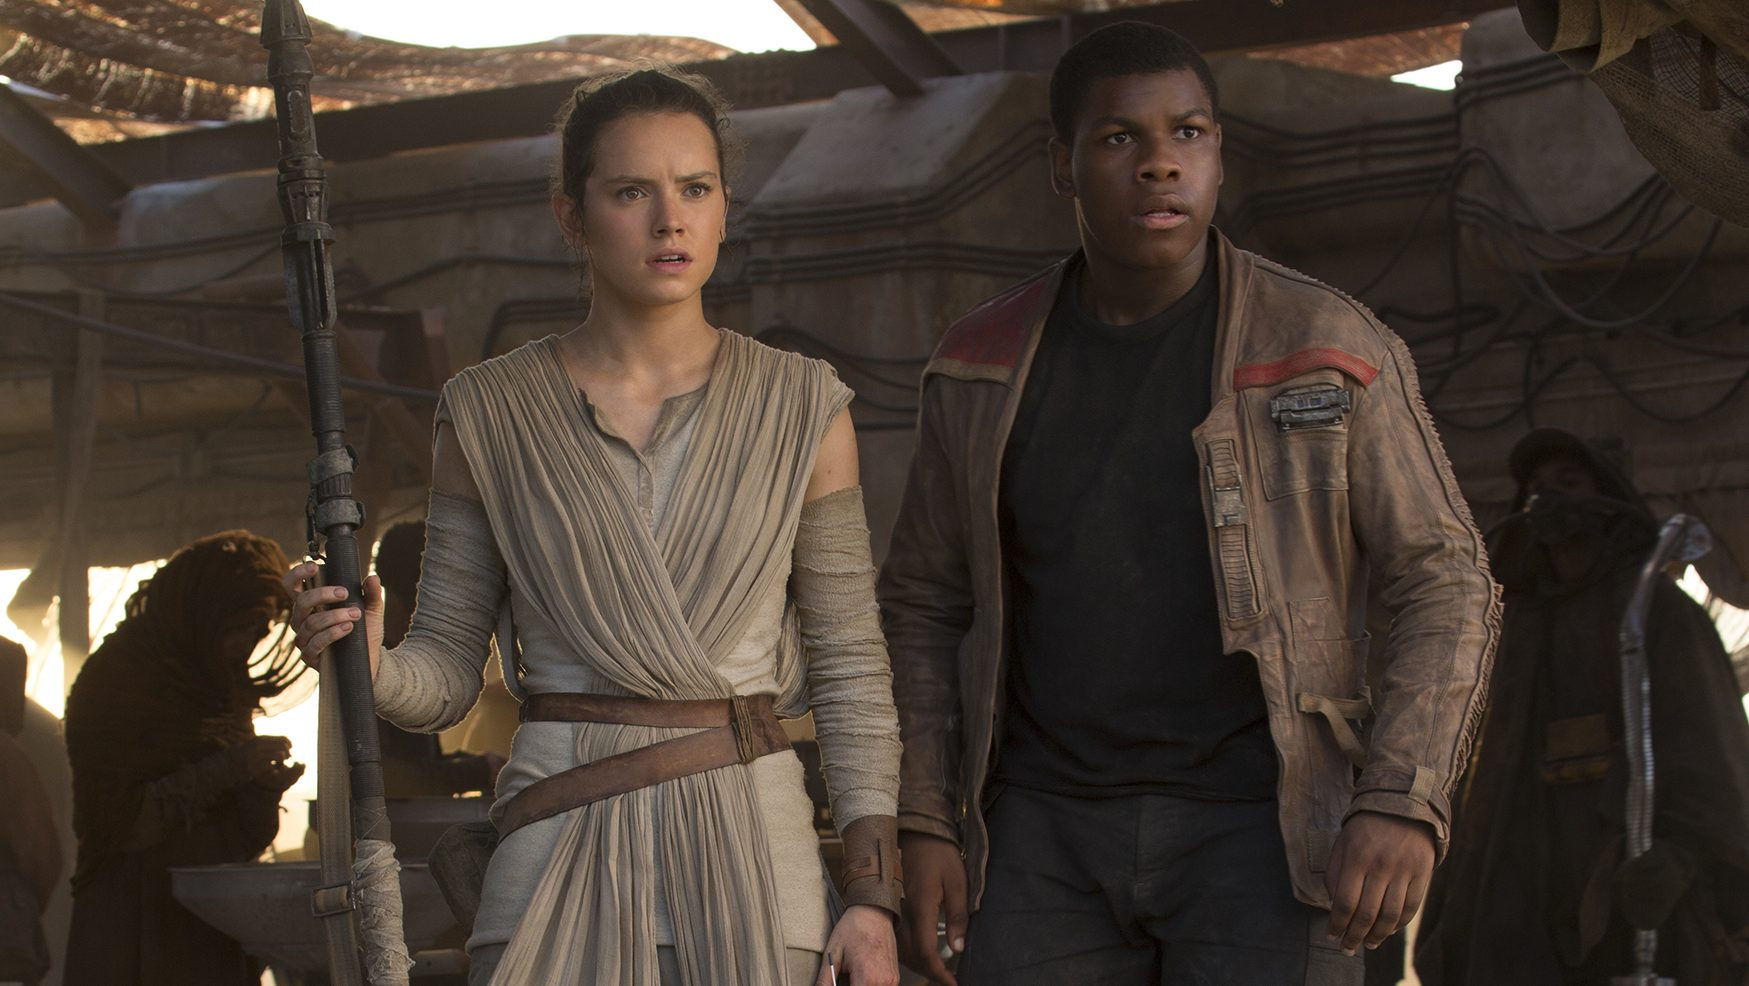 Rey, played by Daisy Ridley, and Finn, played by John Boyega, in a scene from 'The Force Awakens.' (David James/Lucasfilm)